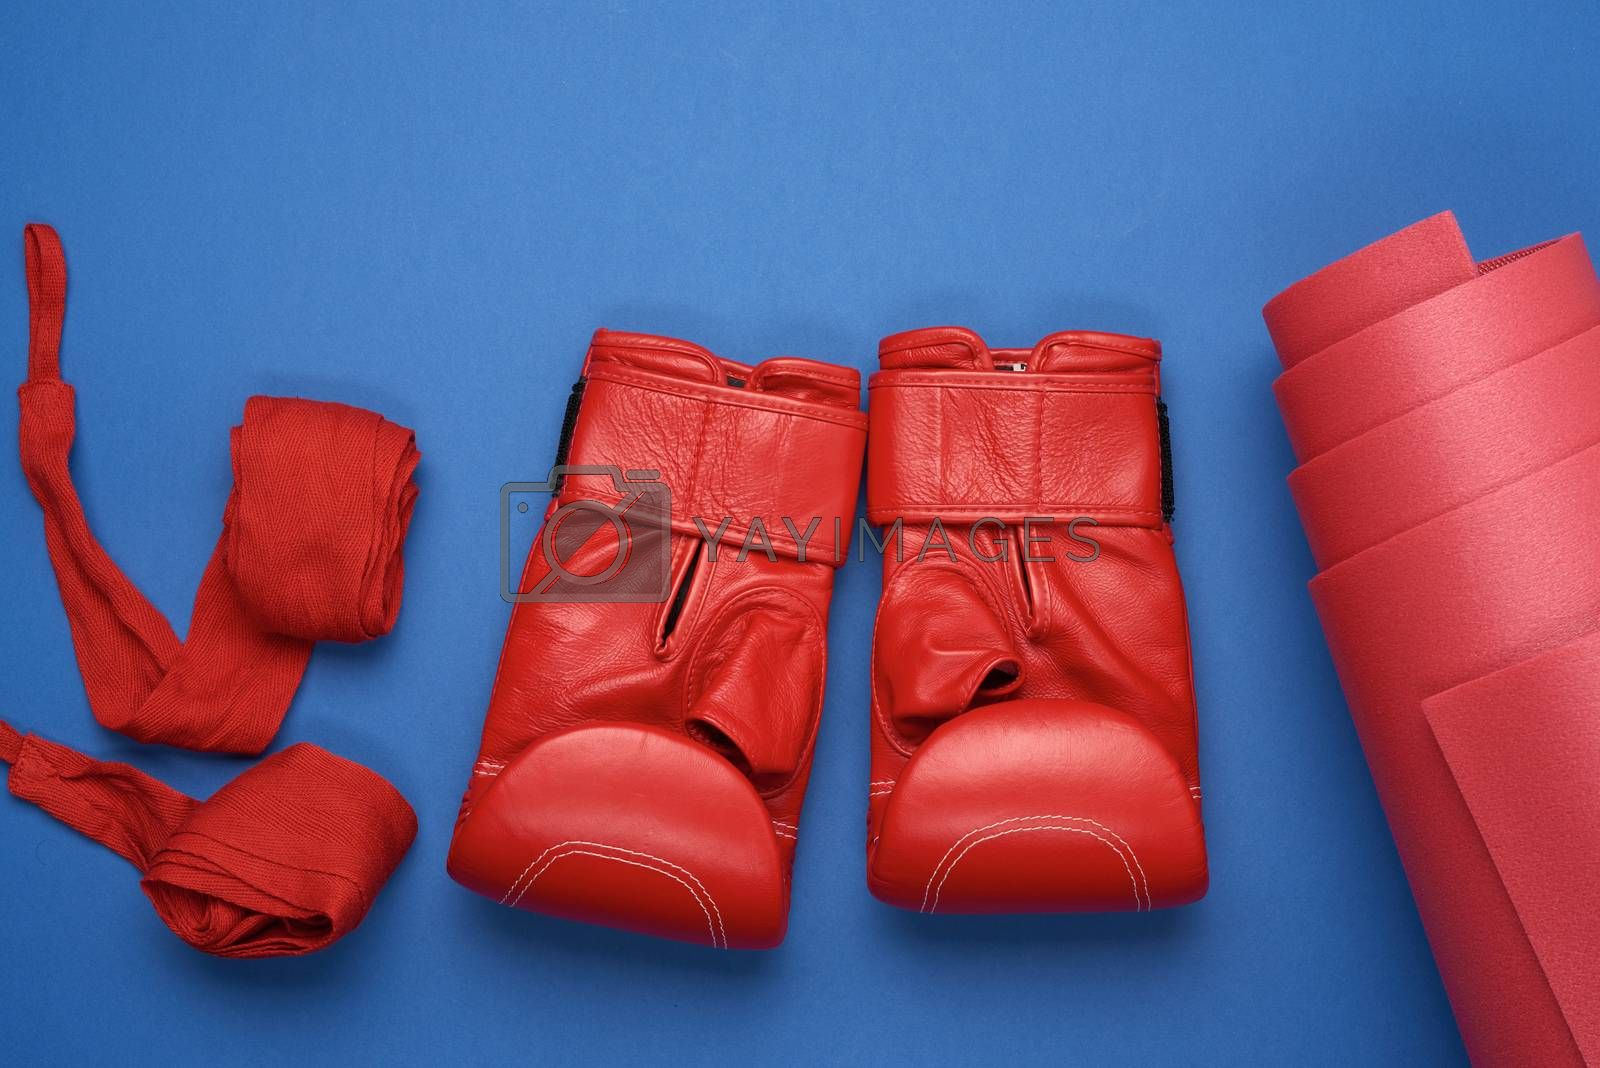 pair of red leather boxing gloves and a textile red elastic bandage for hands lie on a blue background, sports set, flat lay